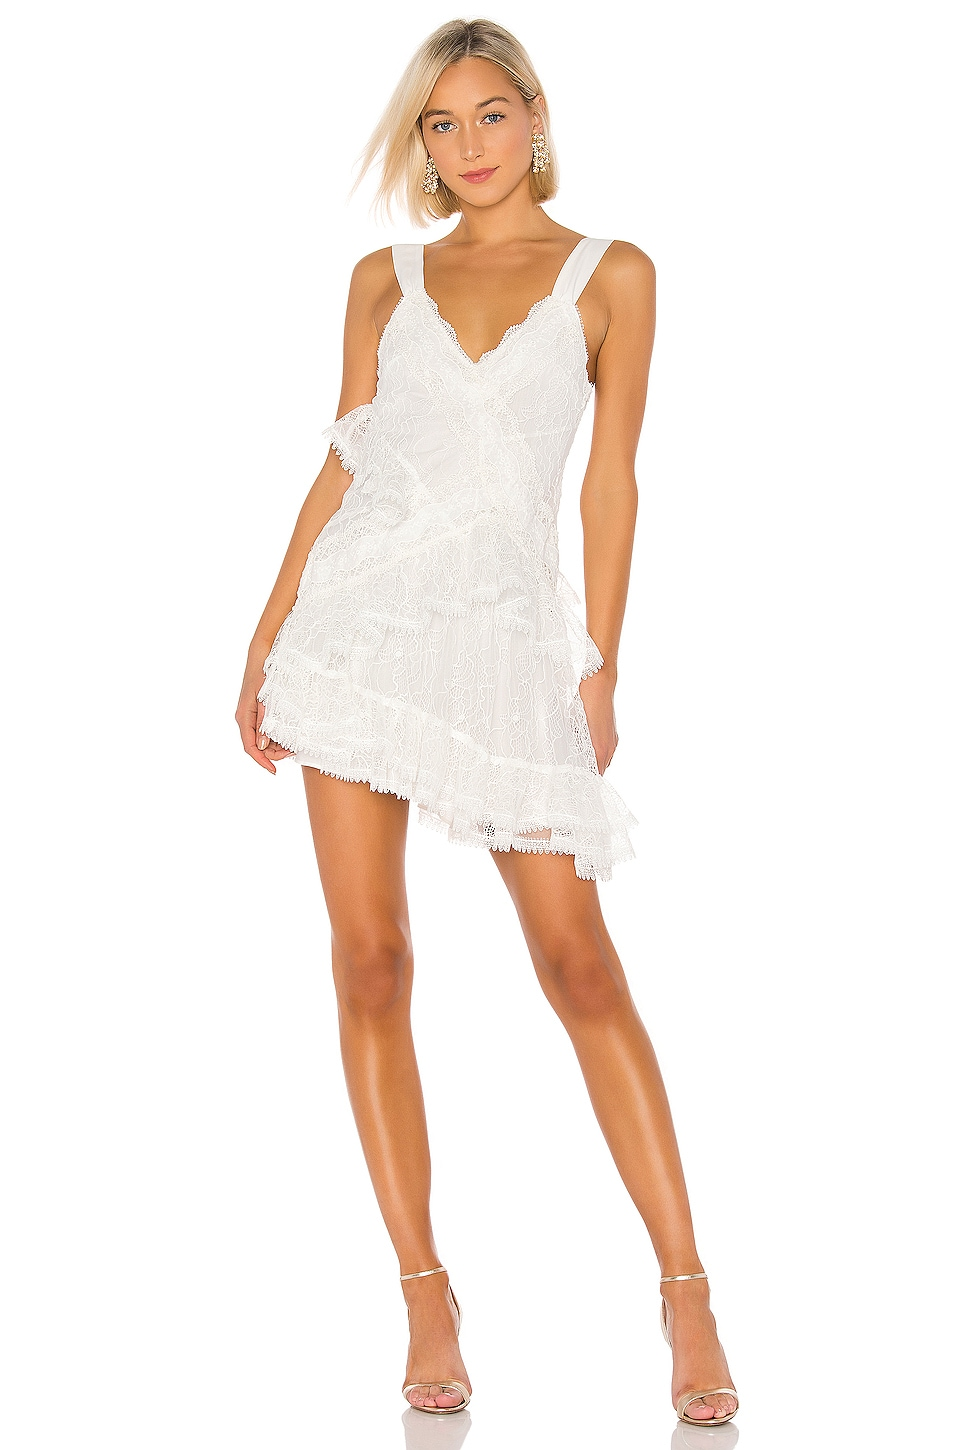 Alexis Ladonna Dress in White